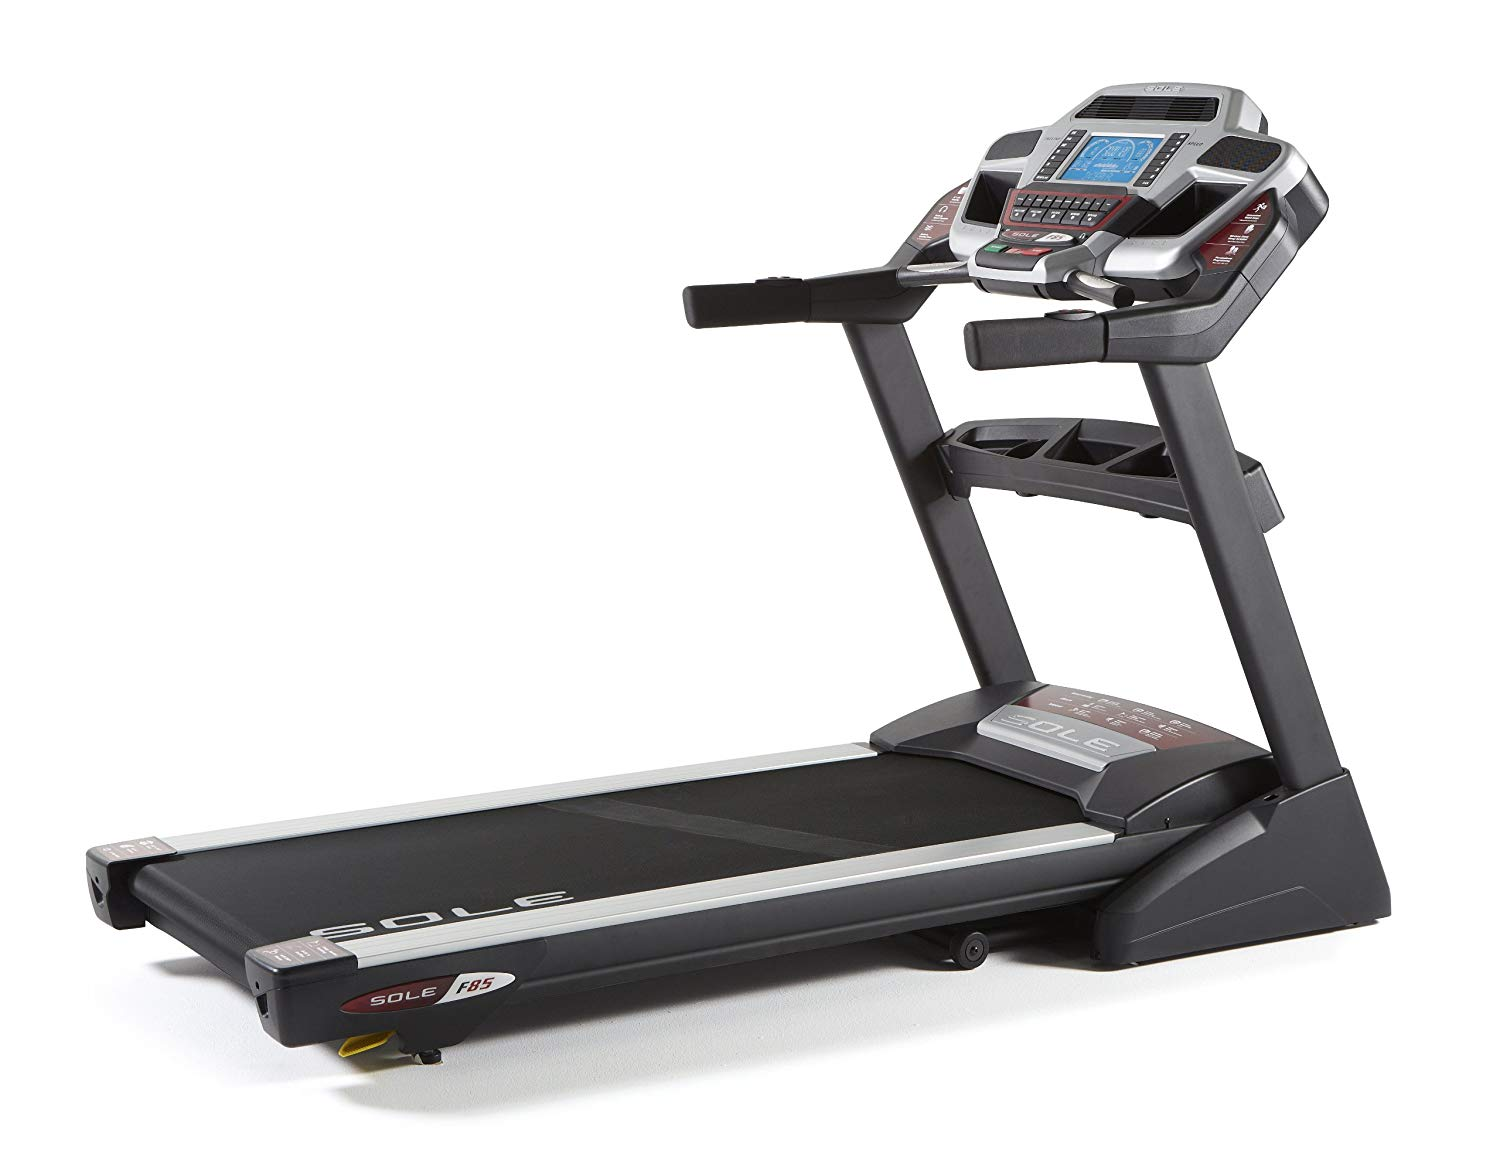 Top Best Quiet Treadmills 2020 Reviews